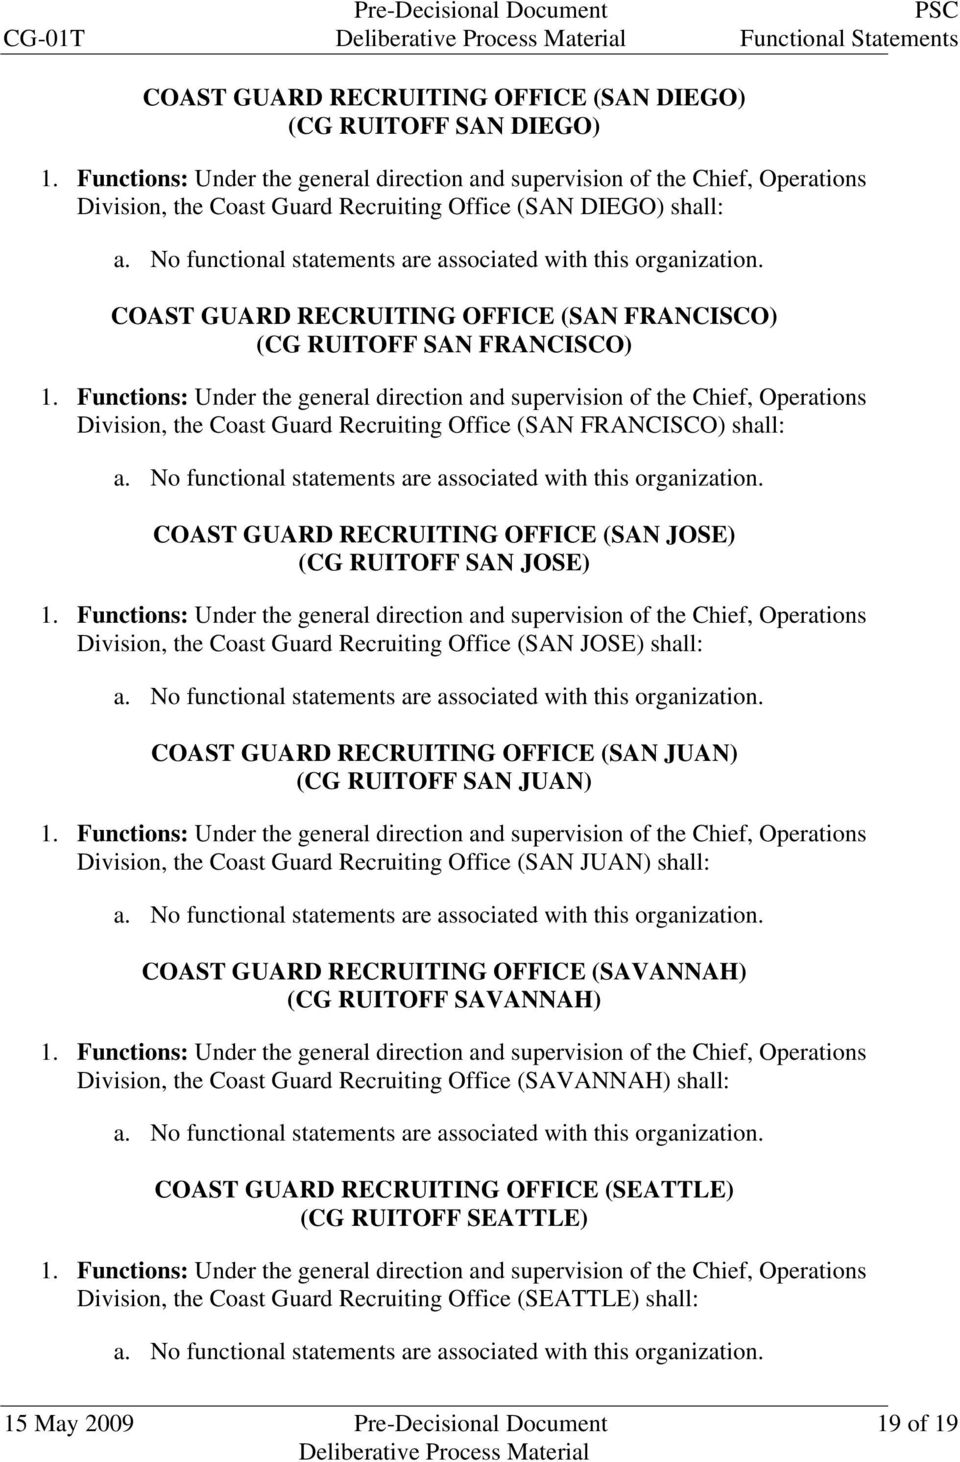 Recruiting Office (SAN JOSE) shall: COAST GUARD RECRUITING OFFICE (SAN JUAN) (CG RUITOFF SAN JUAN) Division, the Coast Guard Recruiting Office (SAN JUAN) shall: COAST GUARD RECRUITING OFFICE